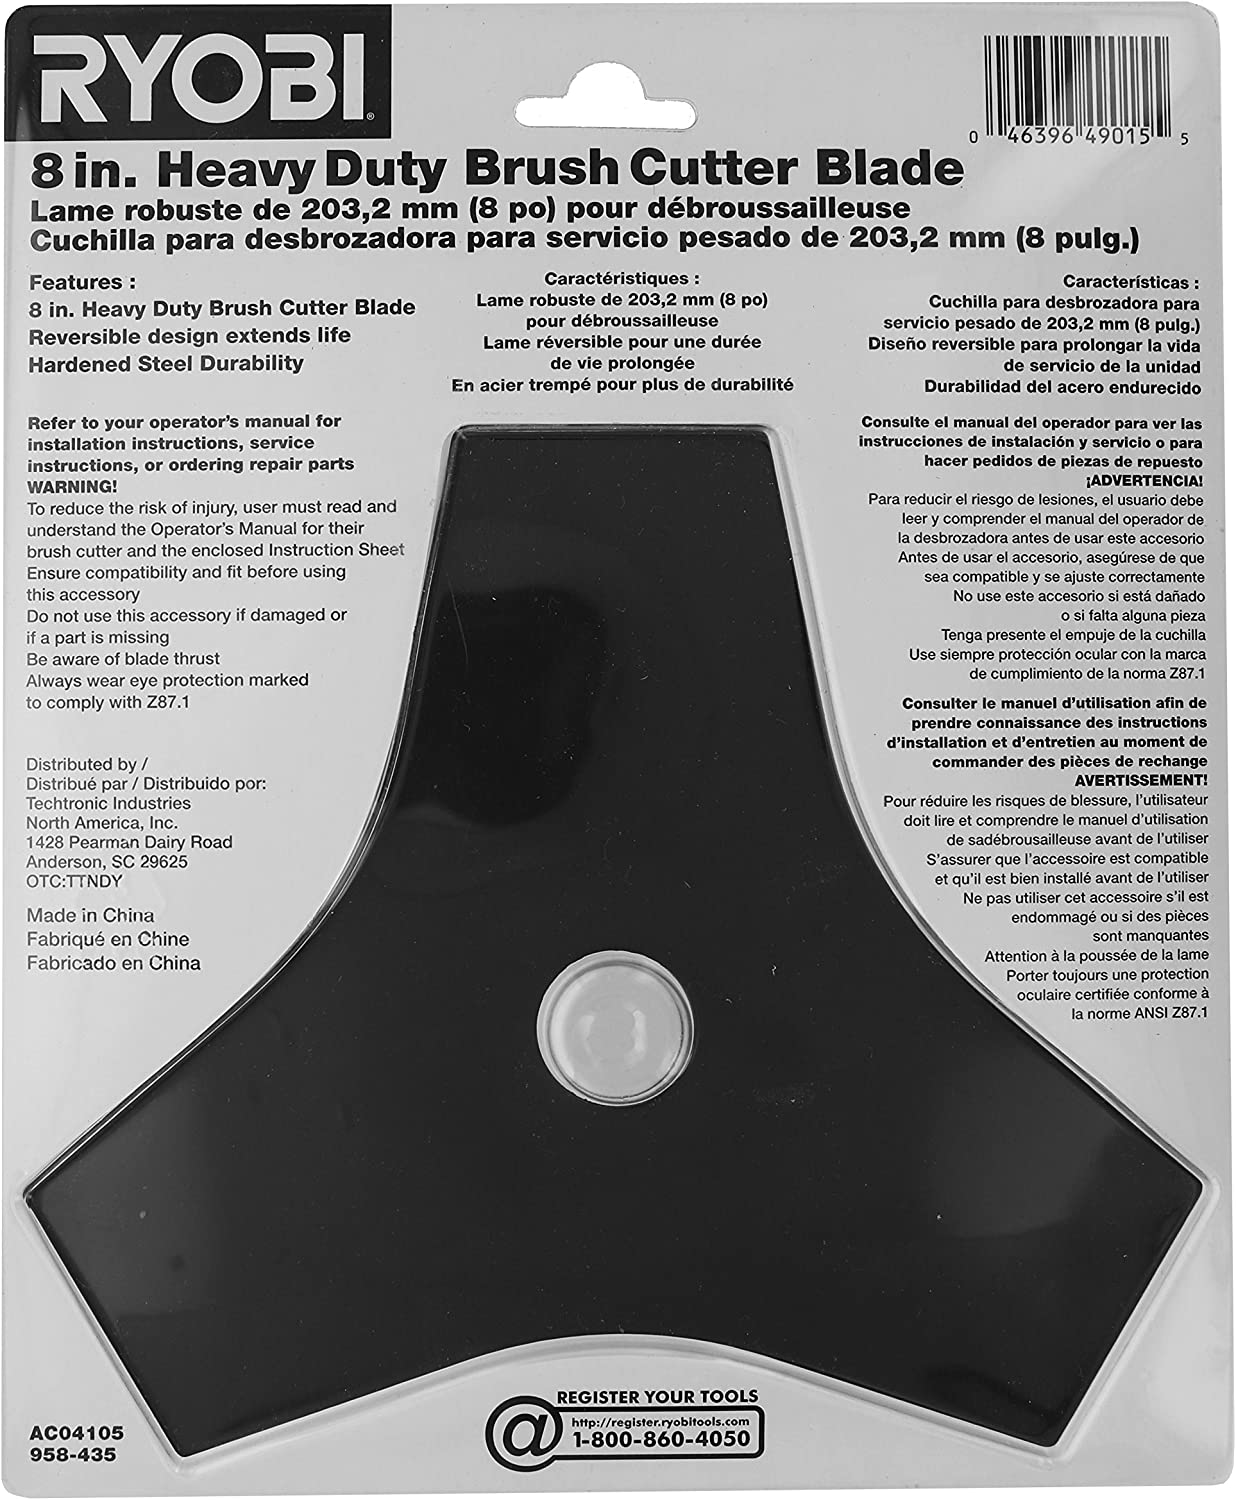 "Ryobi Genuine OEM AC04105 8"" Replacement Heavy Duty Reversible Steel Tri-Arc Brush Cutting Blade for Ryobi Expand-It Models"